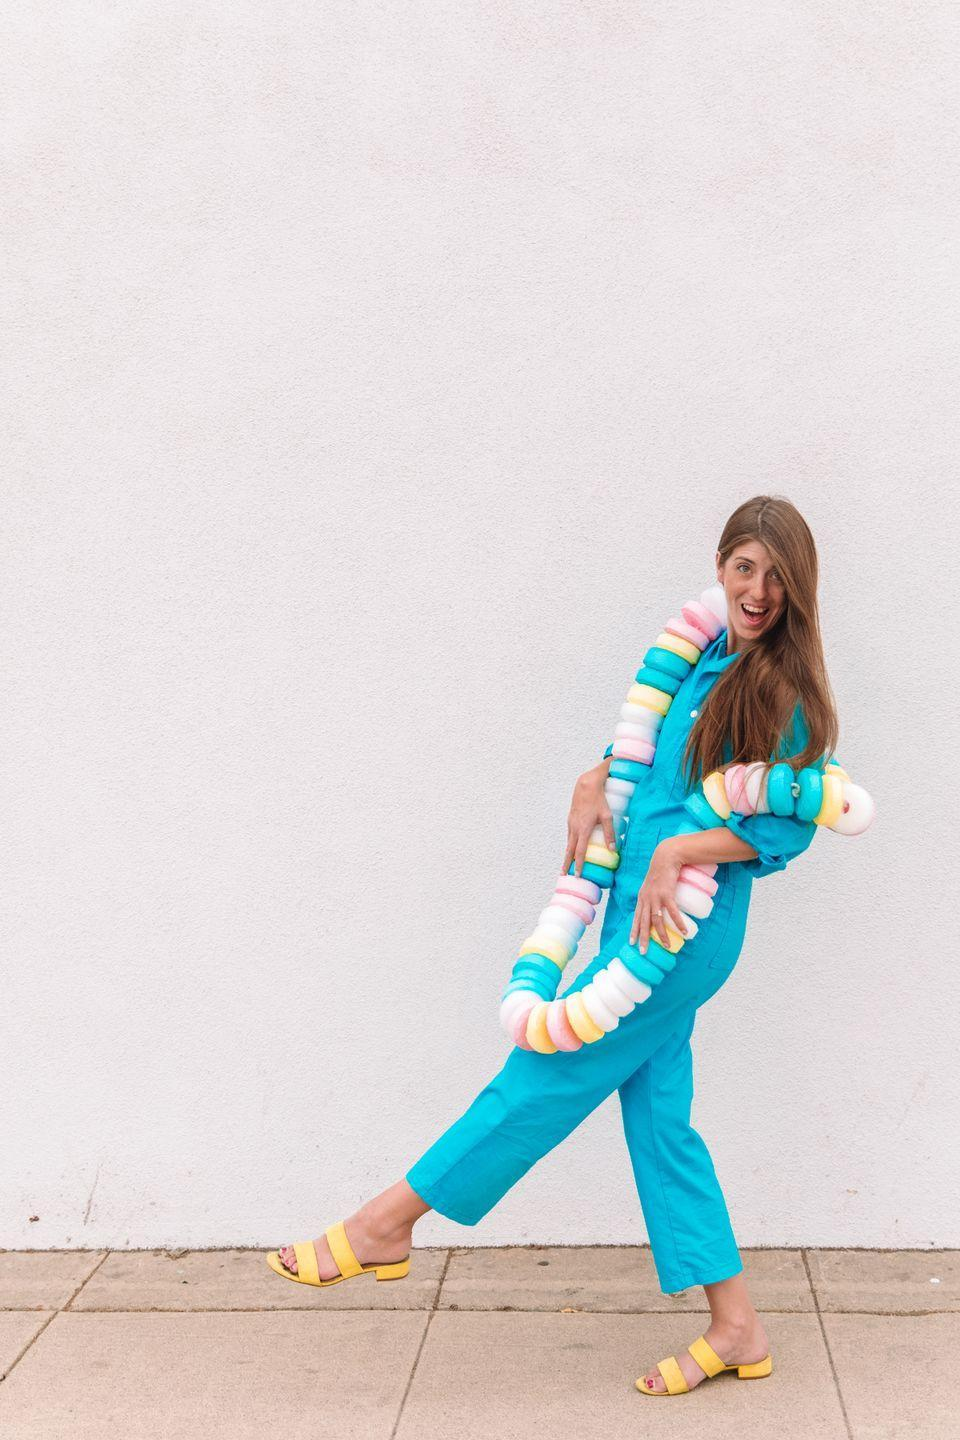 """<p>A super sweet take on the DIY costume that requires just five simple supplies and make good use of those $1 pool noodles when the season is over.</p><p><a class=""""link rapid-noclick-resp"""" href=""""https://studiodiy.com/diy-candy-necklace-costume-sweet-tooth-couples-costume/"""" rel=""""nofollow noopener"""" target=""""_blank"""" data-ylk=""""slk:GET THE TUTORIAL"""">GET THE TUTORIAL</a></p><p><a class=""""link rapid-noclick-resp"""" href=""""https://www.amazon.com/dp/B00P4CGKS0/?tag=syn-yahoo-20&ascsubtag=%5Bartid%7C10072.g.33547559%5Bsrc%7Cyahoo-us"""" rel=""""nofollow noopener"""" target=""""_blank"""" data-ylk=""""slk:SHOP POOL NOODLES"""">SHOP POOL NOODLES</a></p>"""